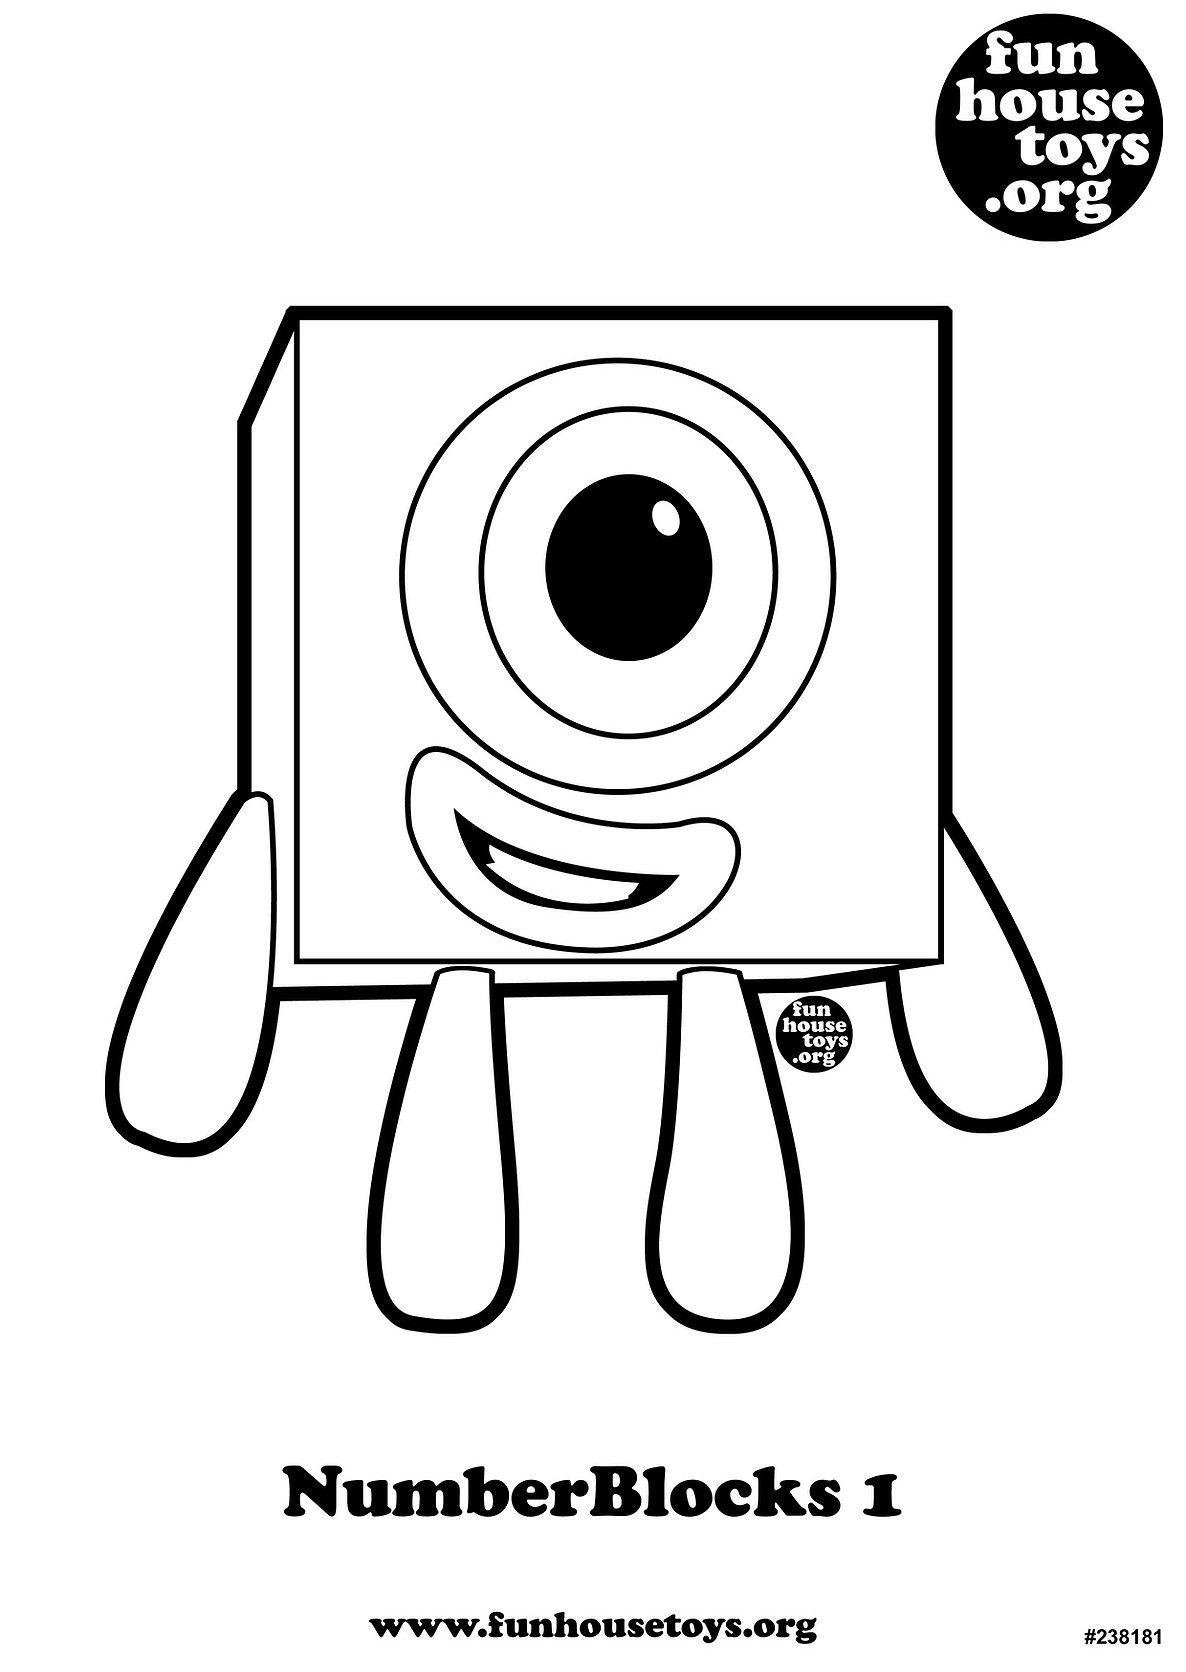 Numberblocks 1 Printable Coloring Page J